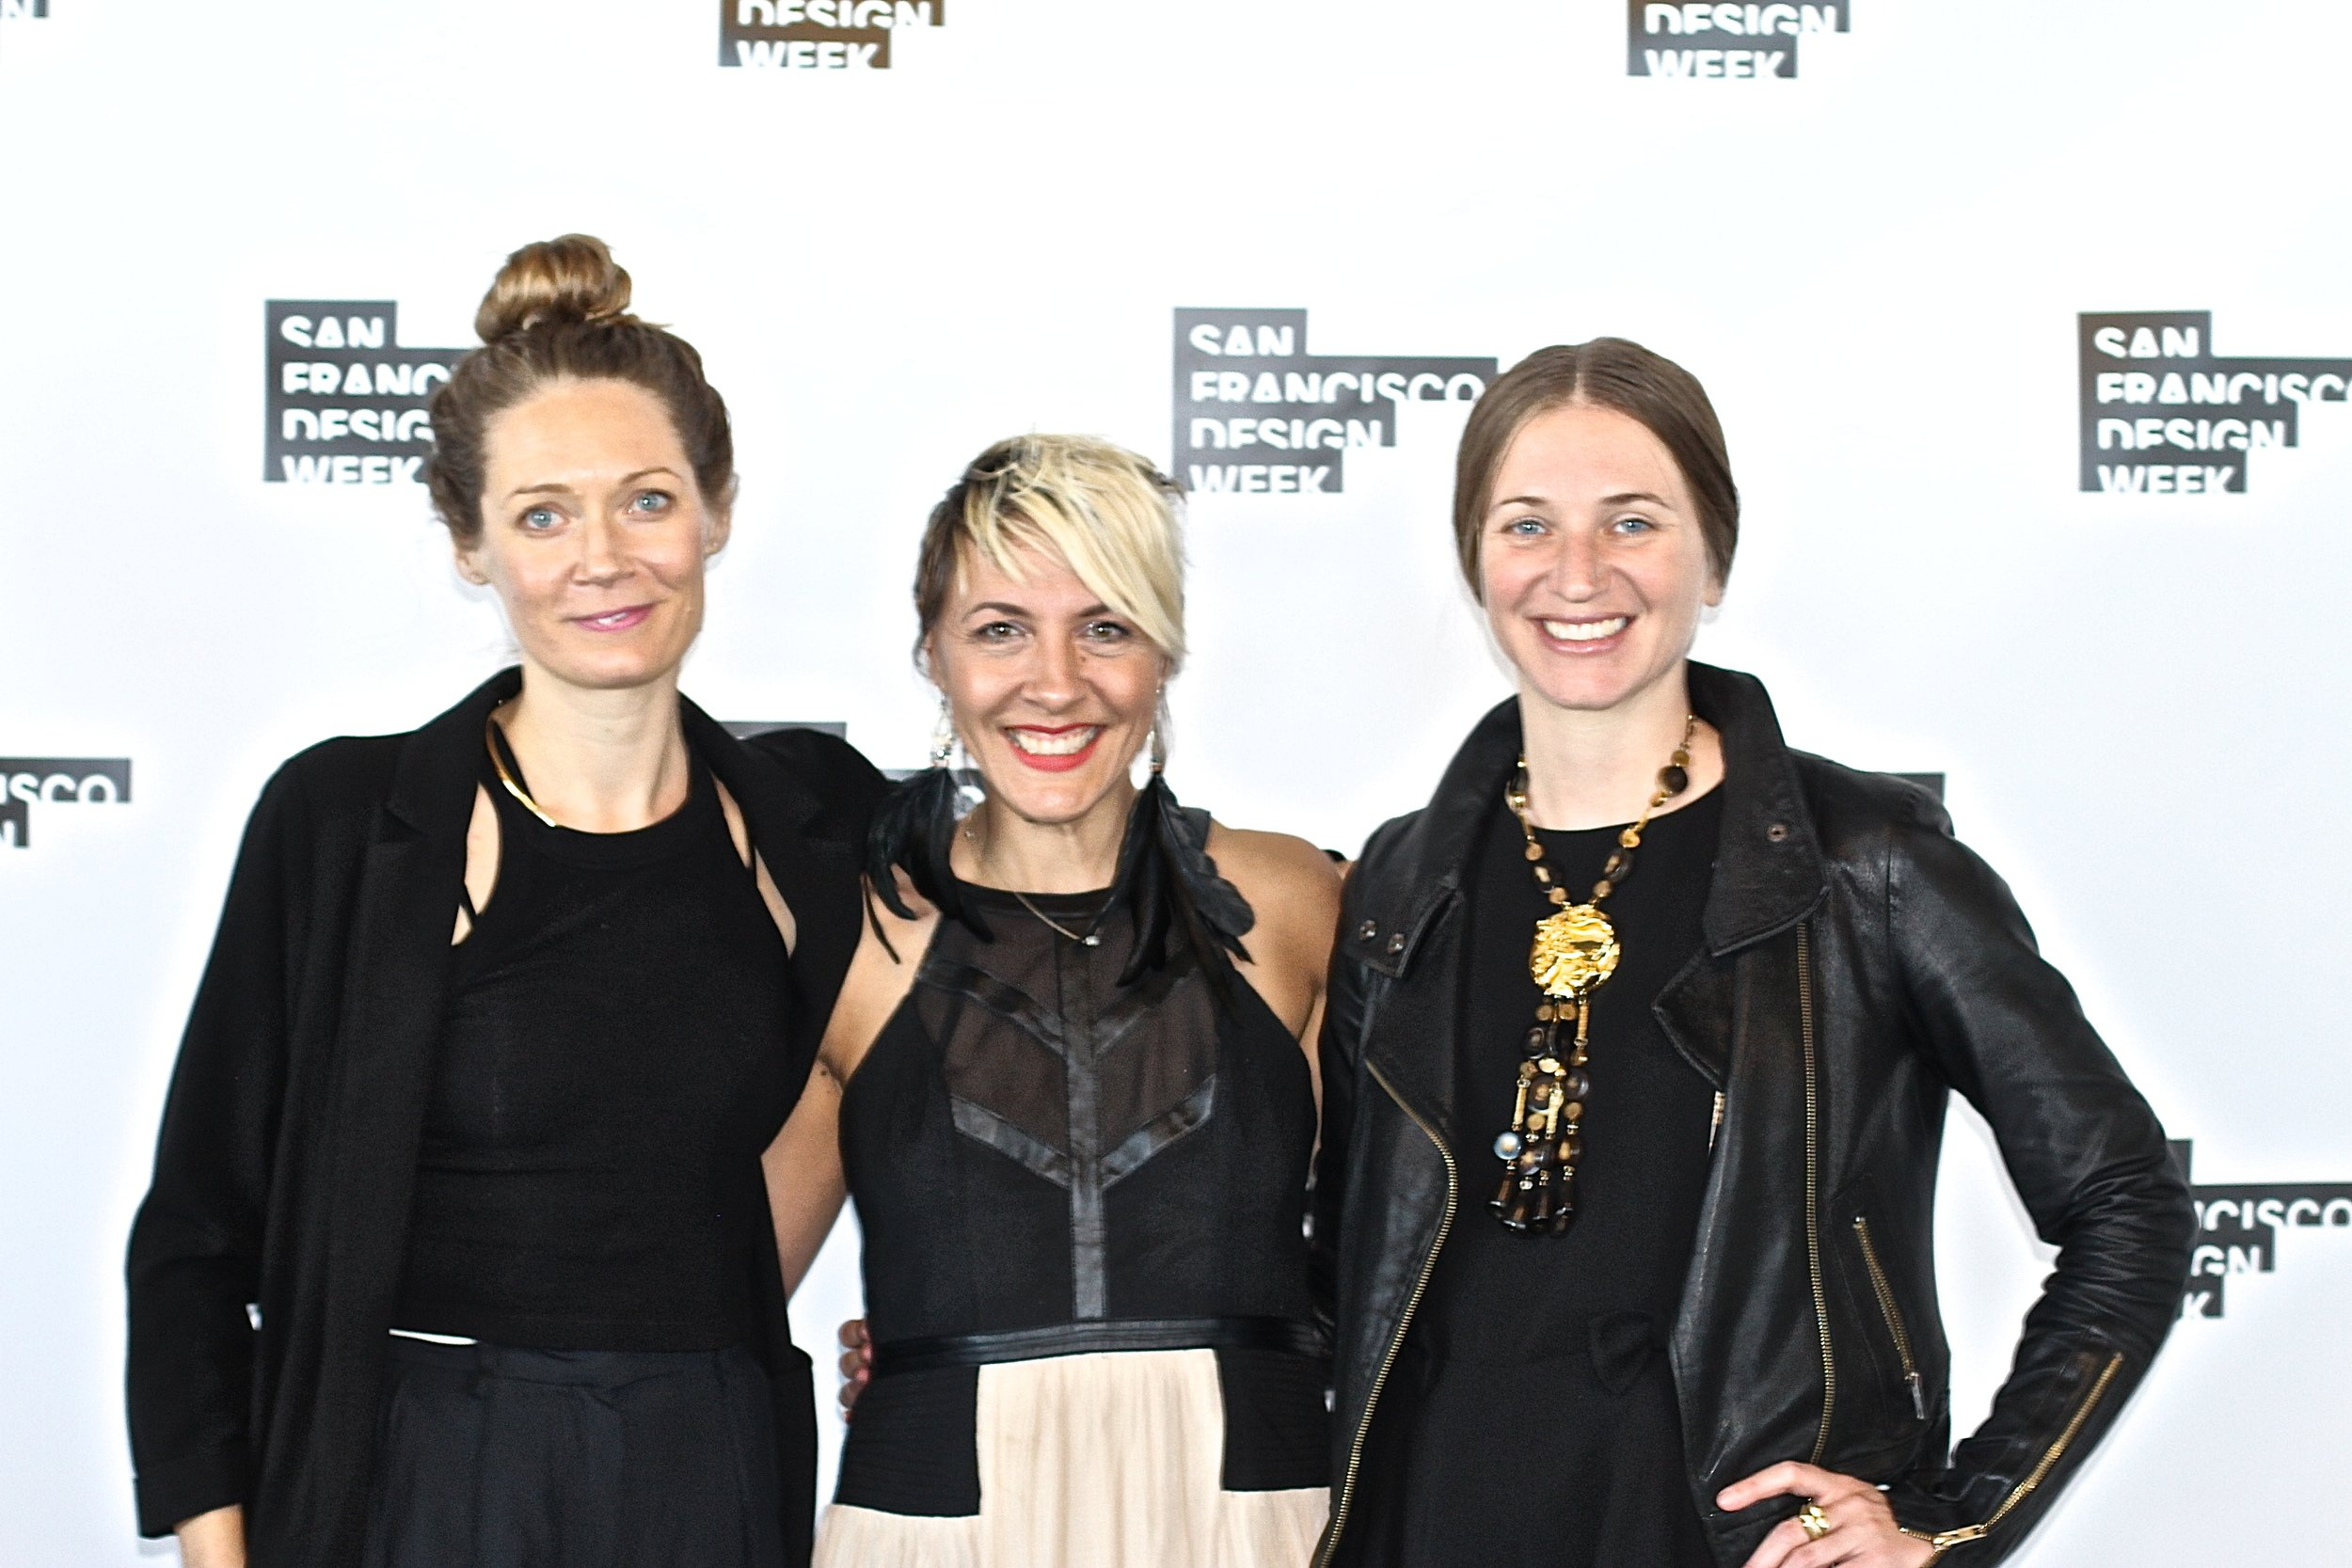 Rhonda Holberton, Paige Loczi and Aimee Friberg at San Francisco Design Week opening night.